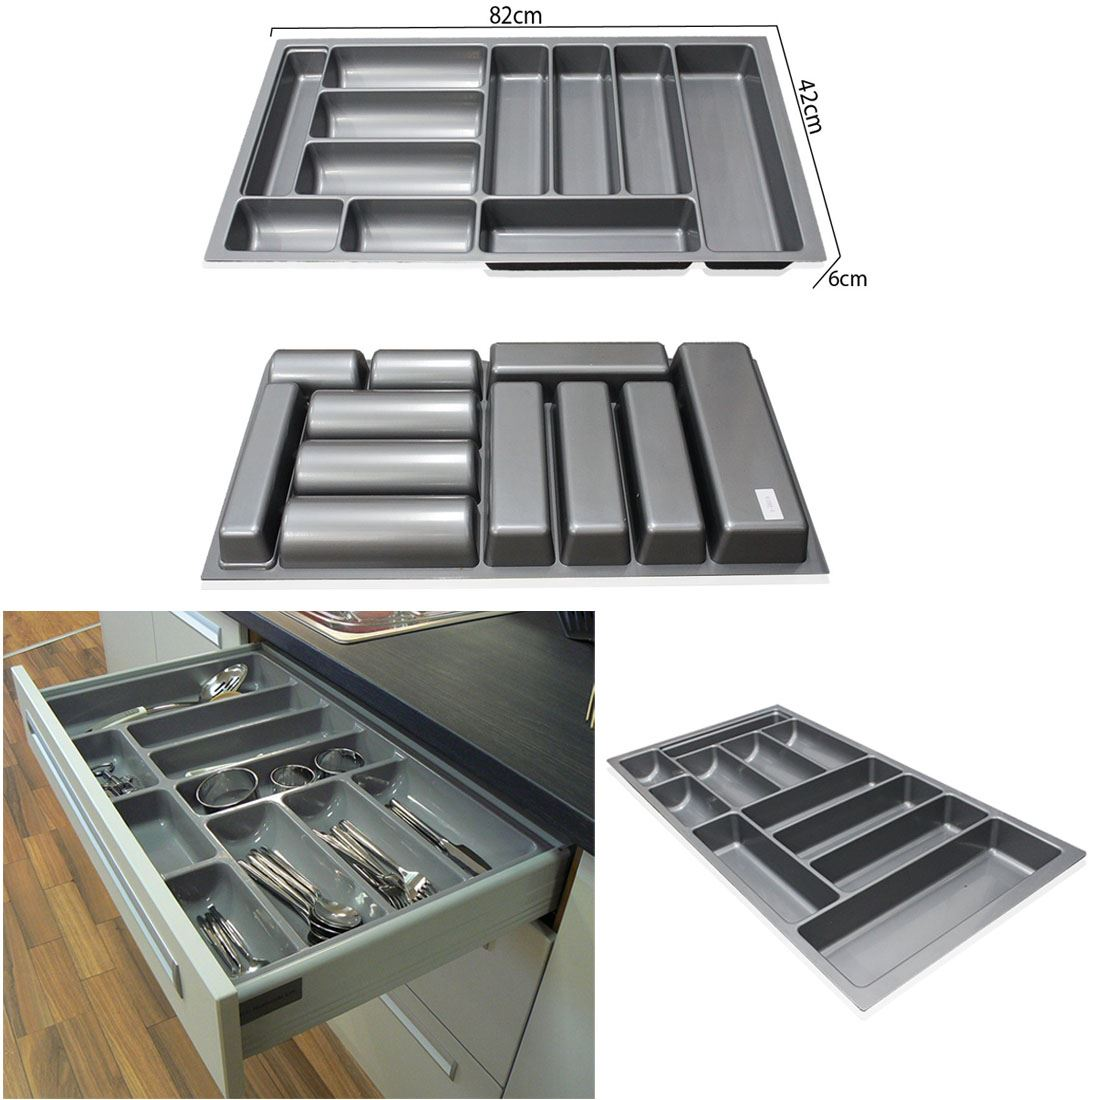 800mm 900mm grey plastic cutlery trays kitchen drawers for 4 box auto in tandem